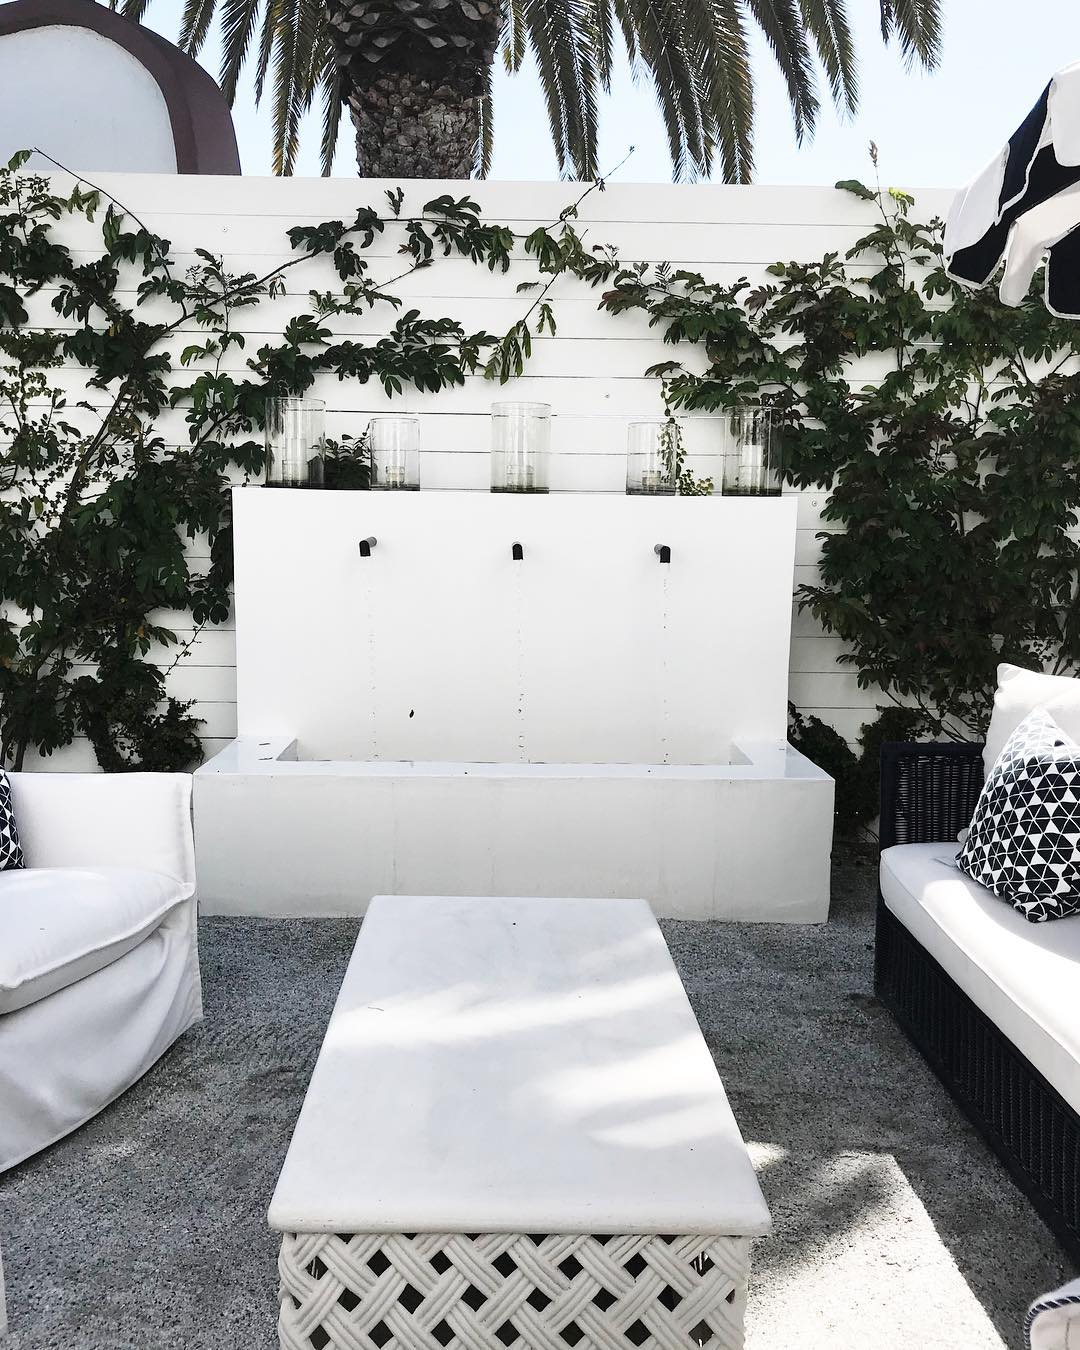 Bright✨fresh🍃and clean 💧 Always loving some new patio inspiration! #homesbydkcowles #dkfindshomes